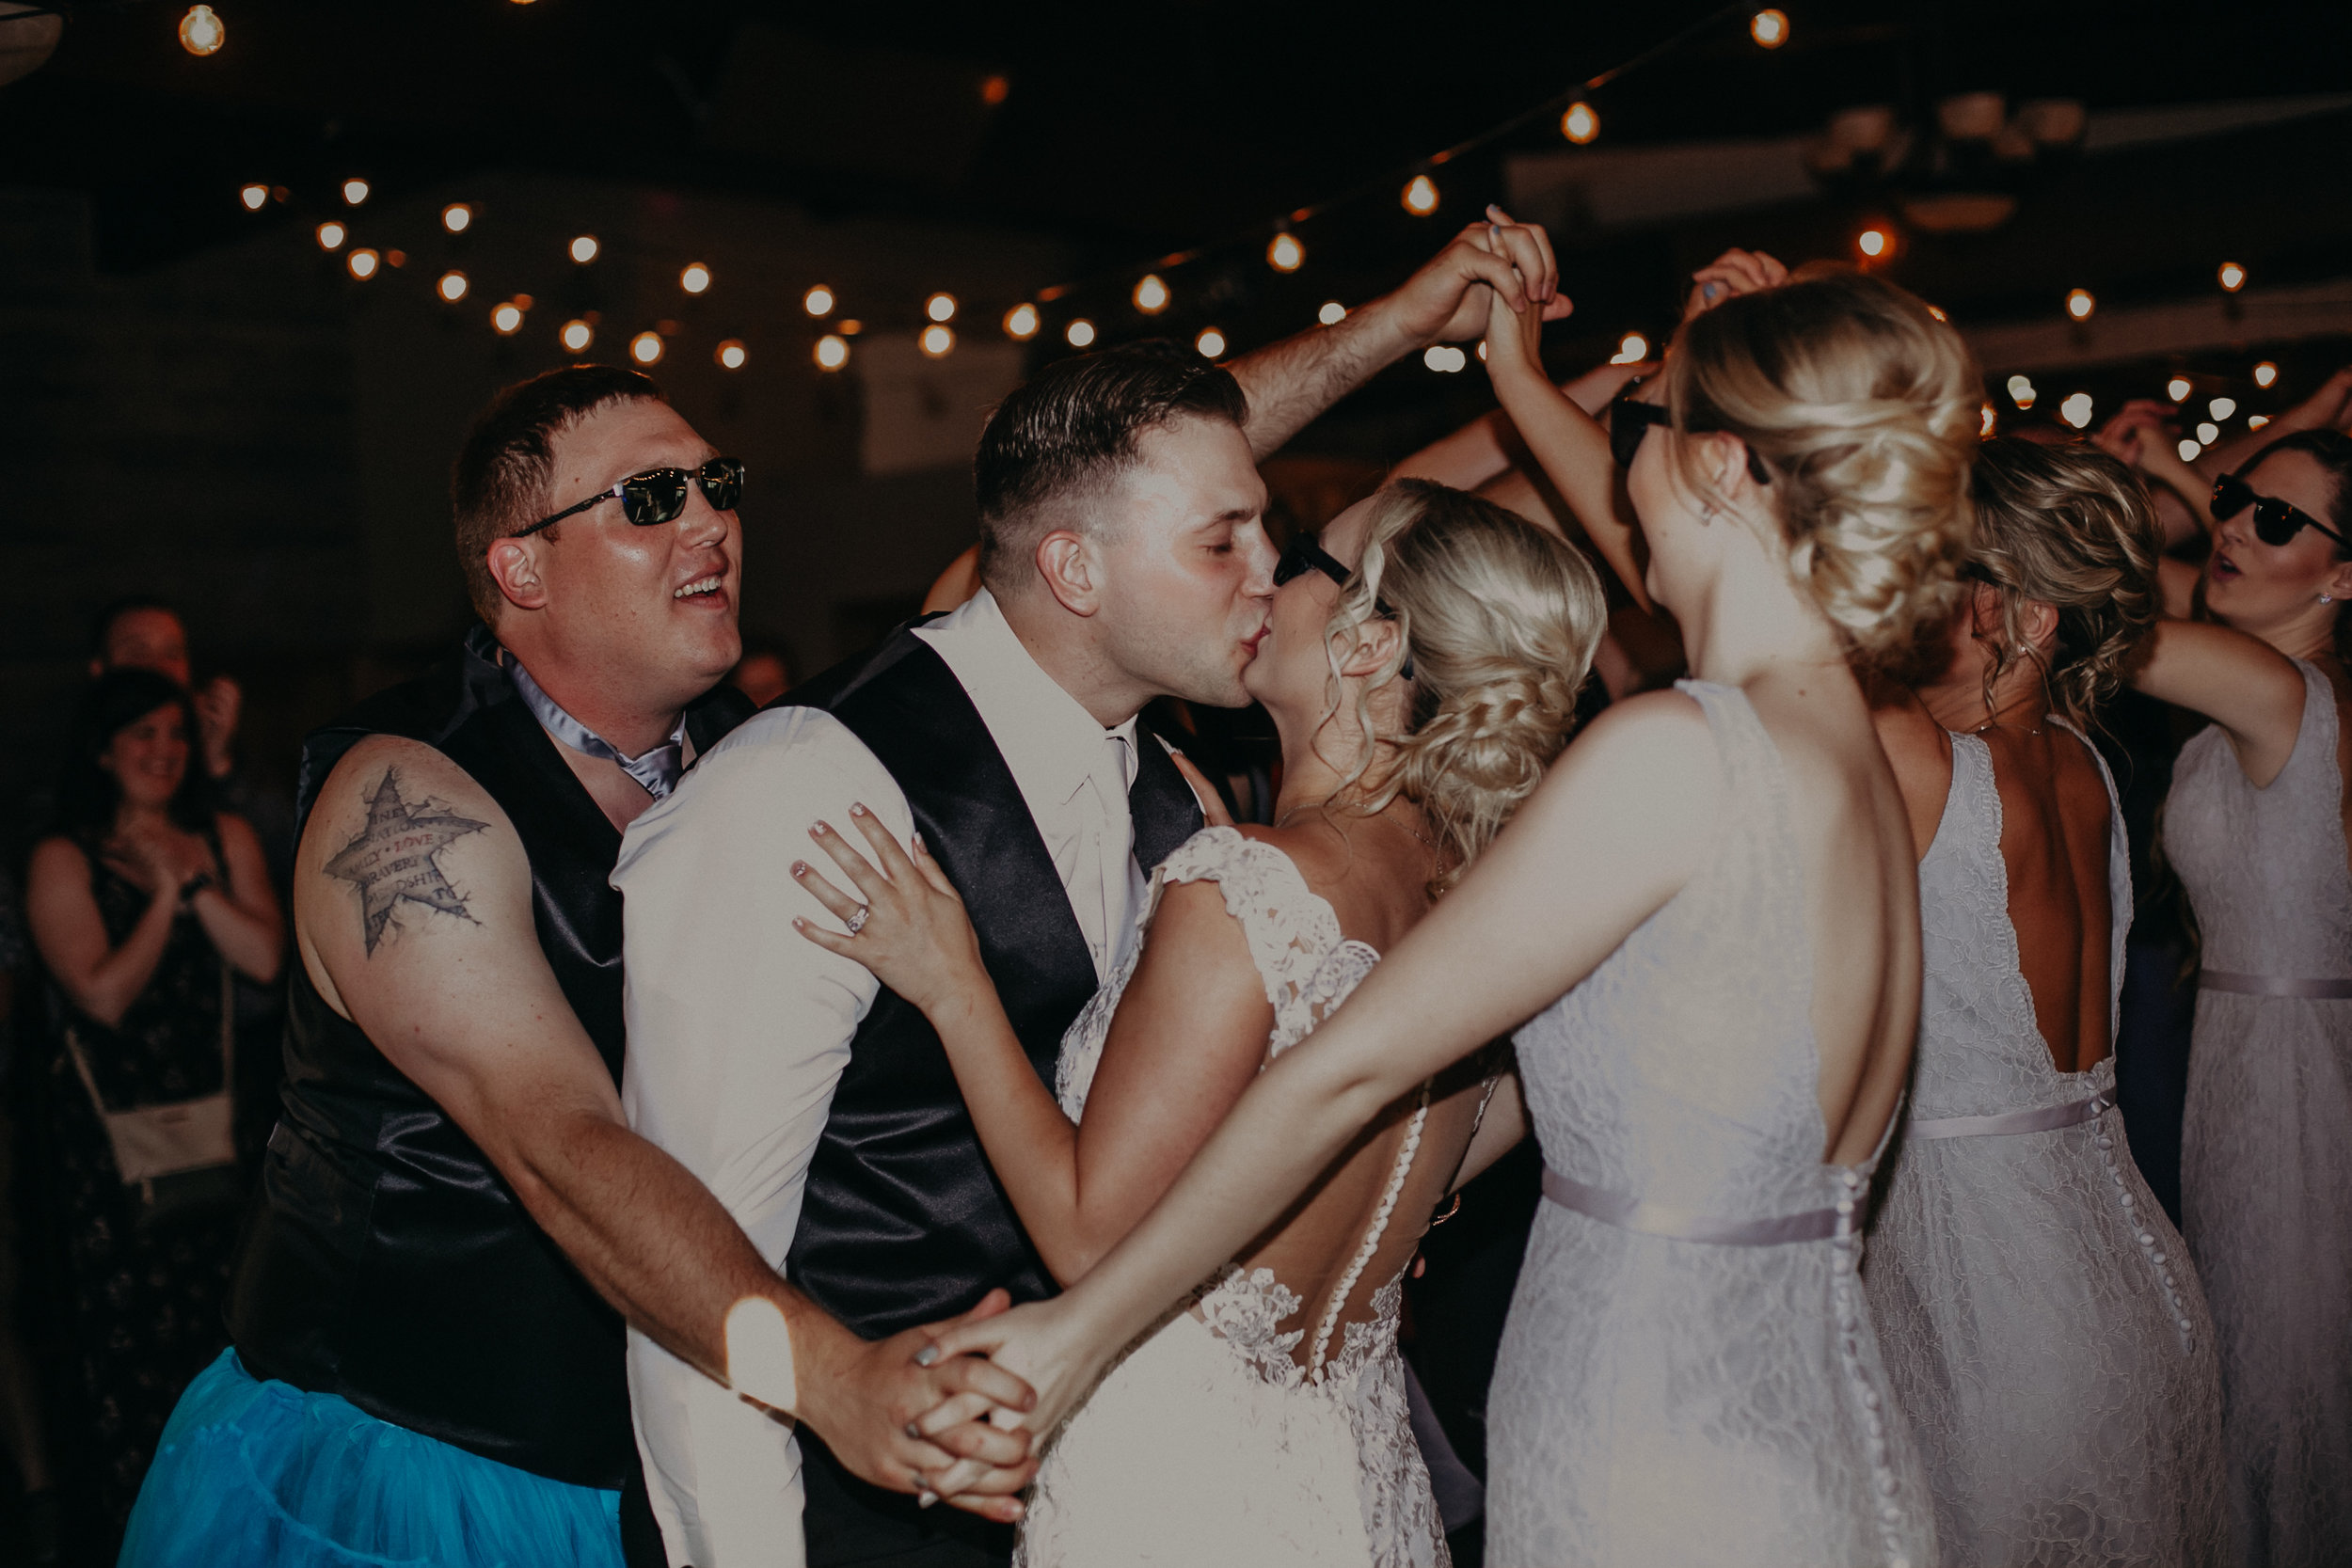 Over the Top Entertainment wedding dj at RiverEdge Golf Club in Marshfield WI